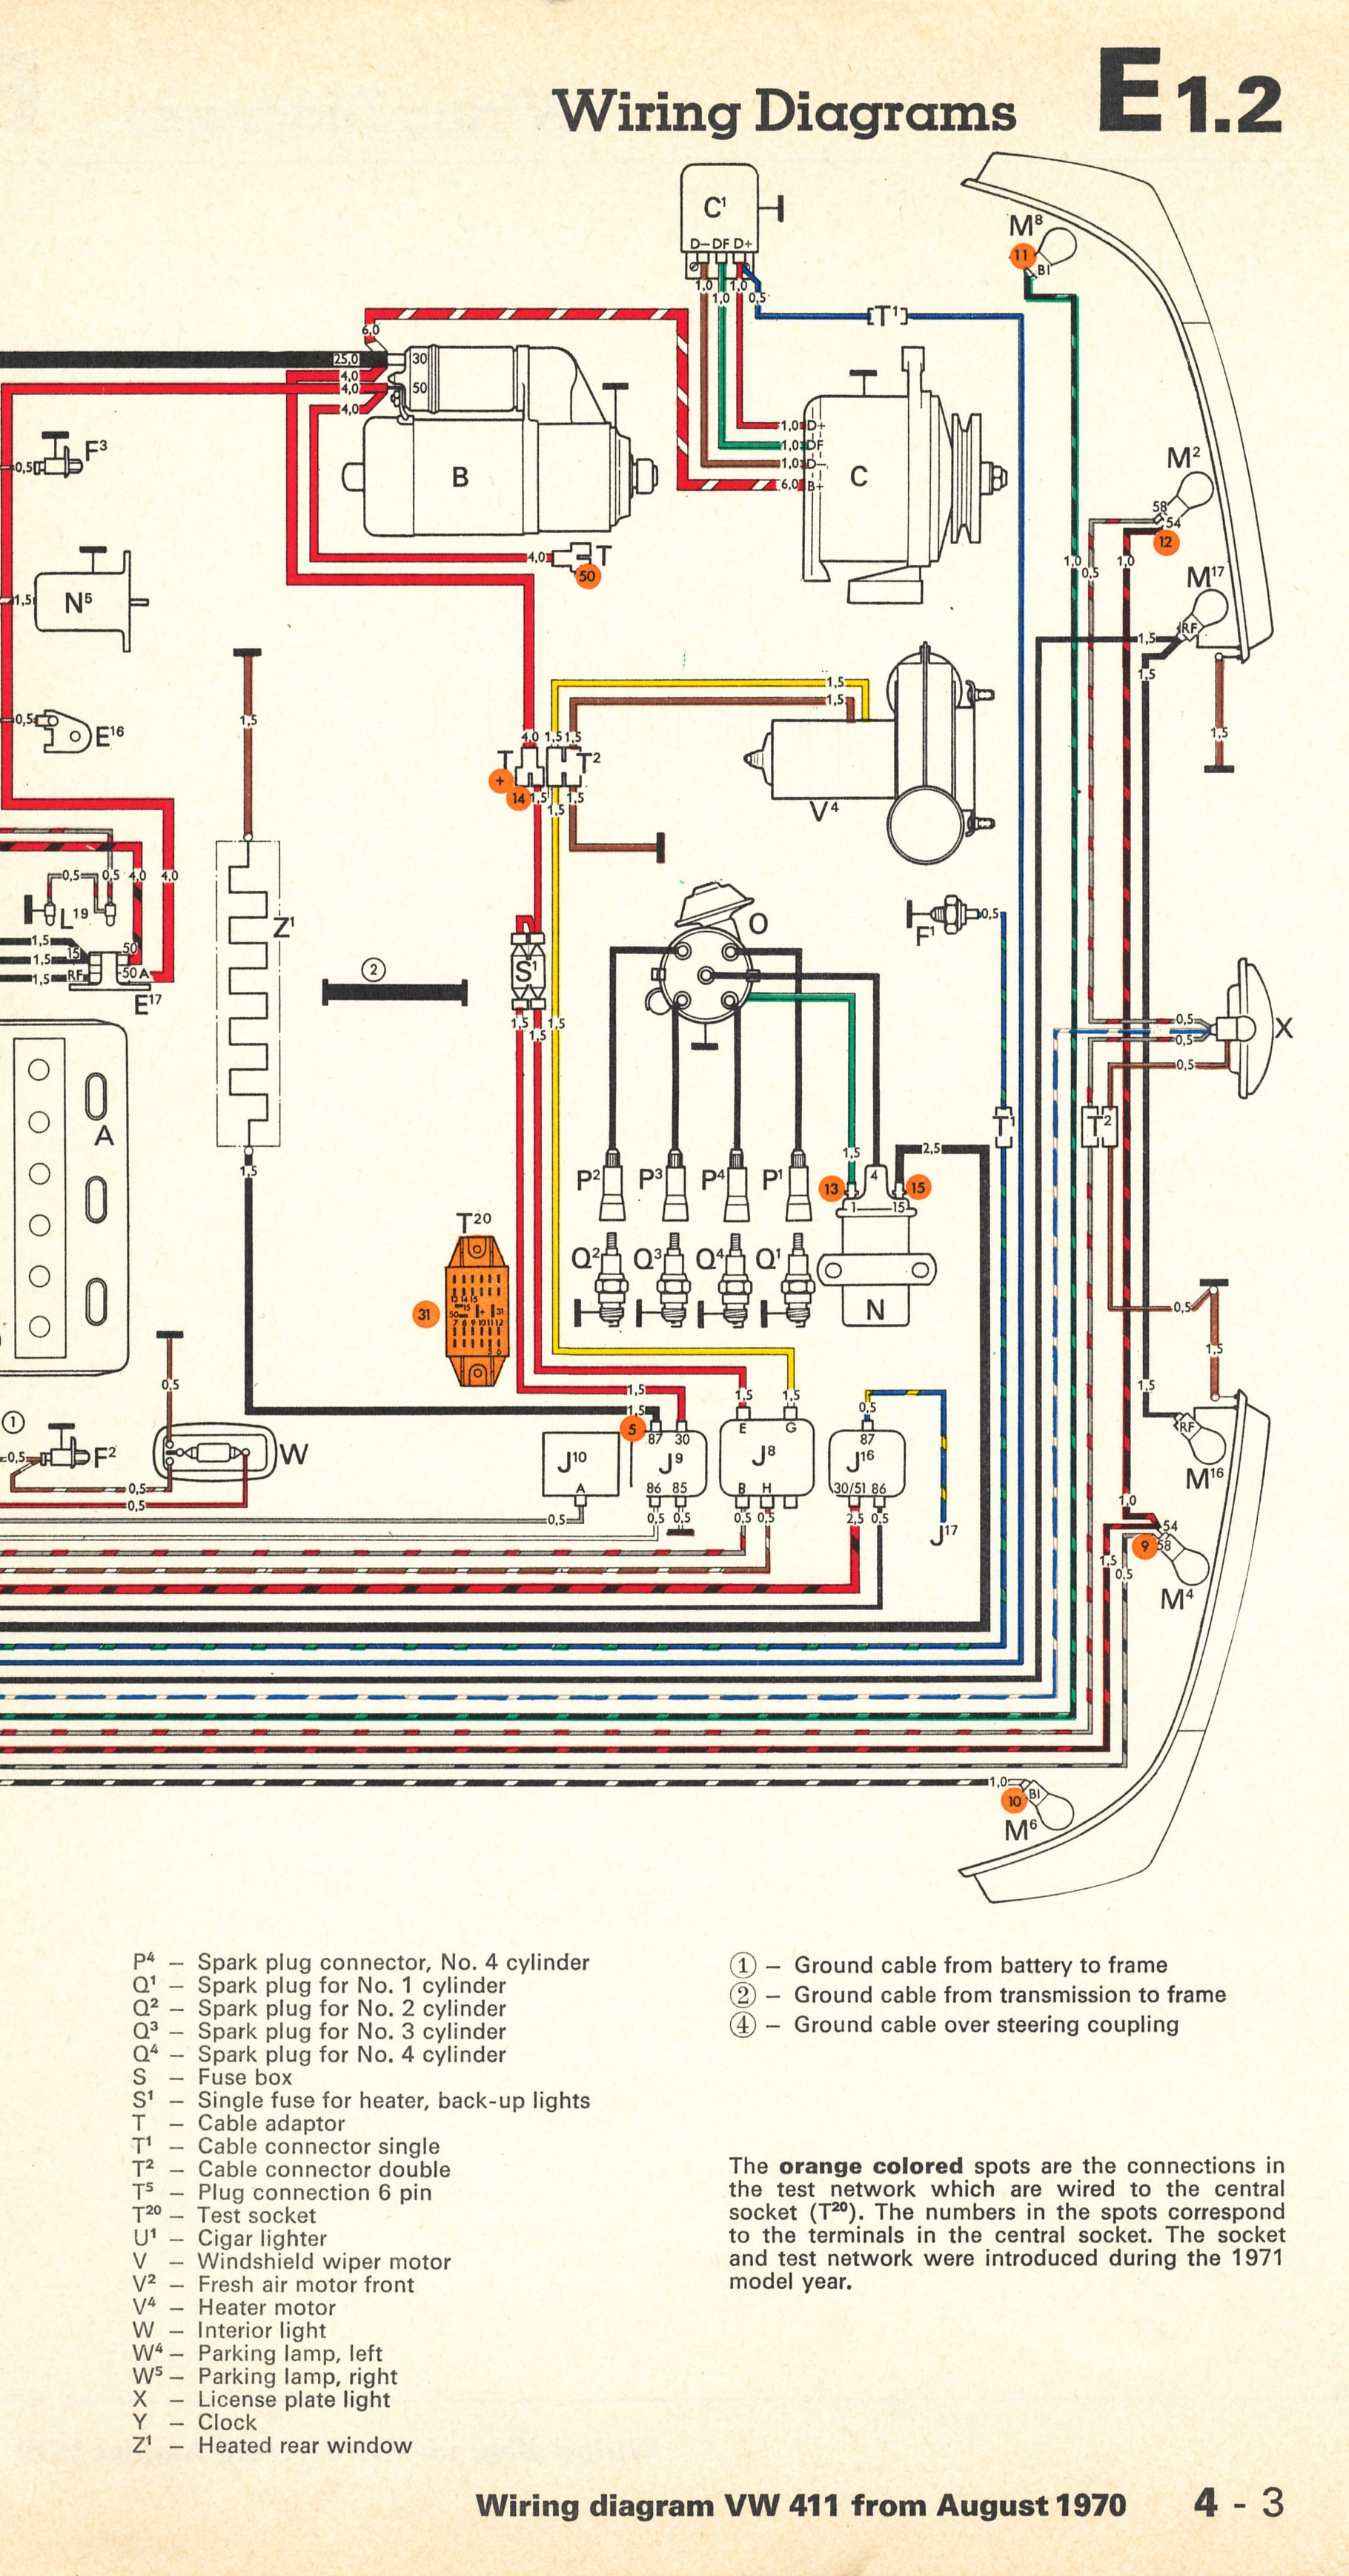 thesamba.com :: type 4 wiring diagrams wiring diagram 5s1f #11